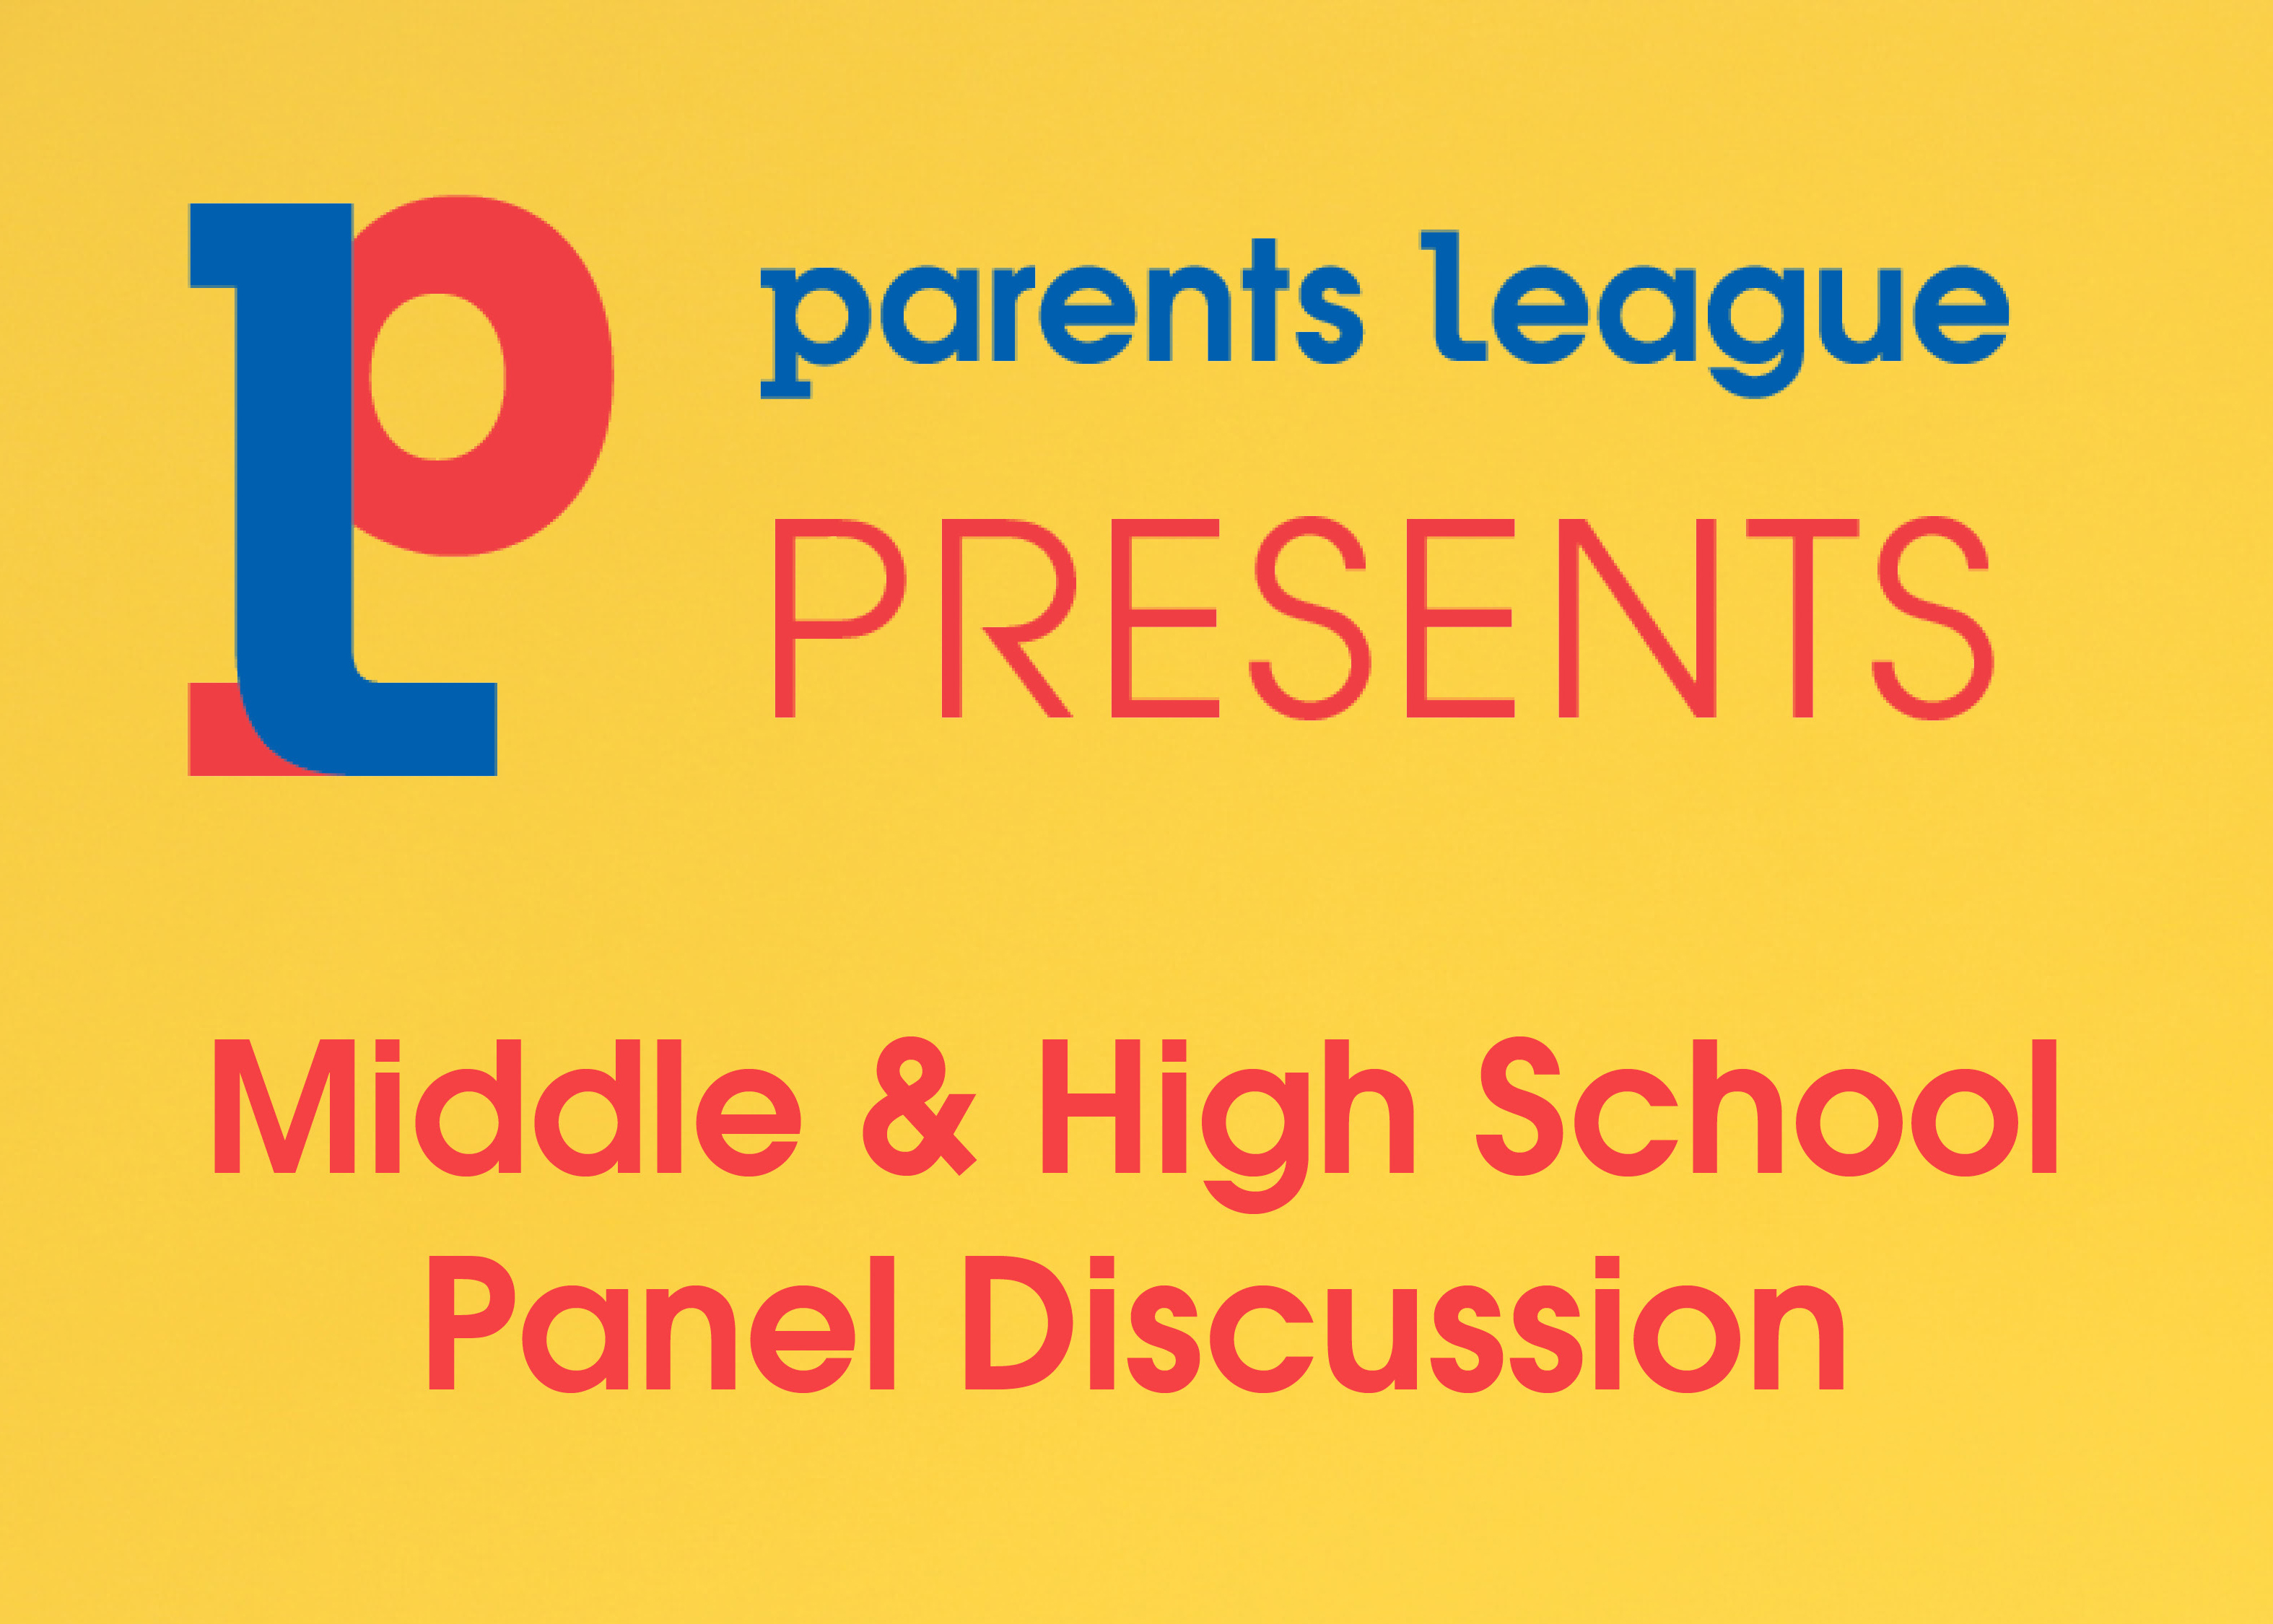 Middle School and High School Panel Discussion